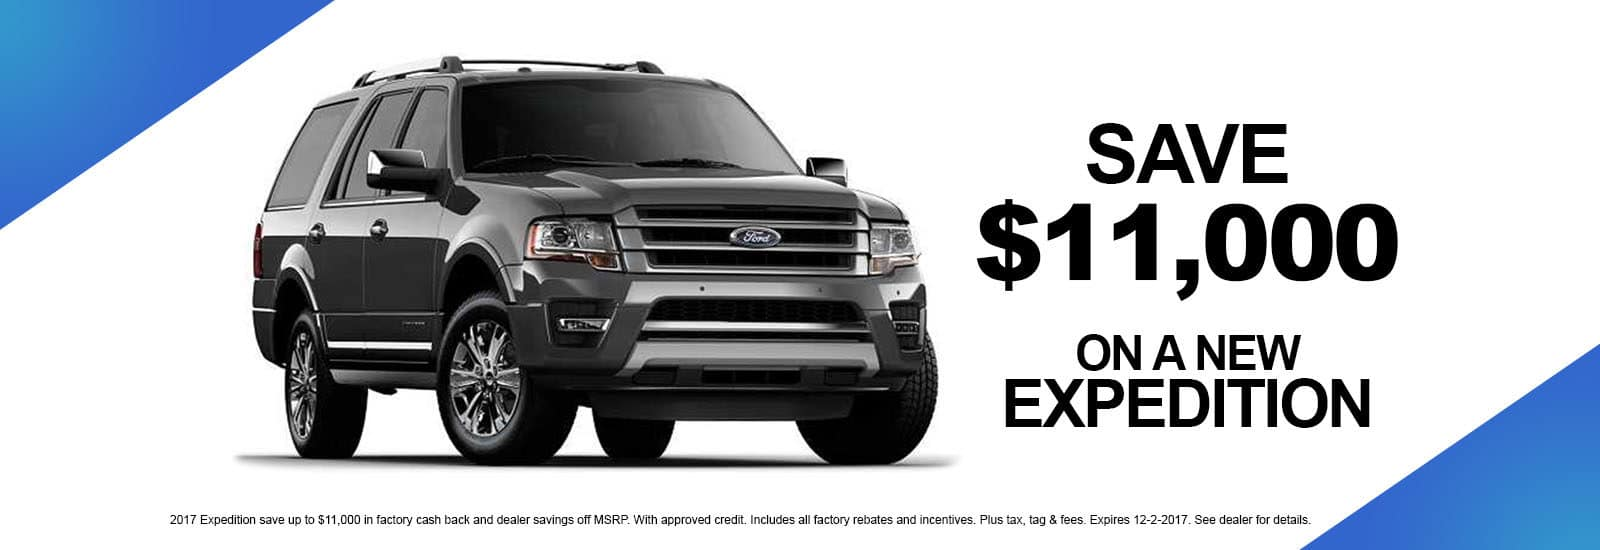 Expedition  sc 1 th 131 & Ford Dealer in Greenwood IN | Ray Skillman Ford markmcfarlin.com